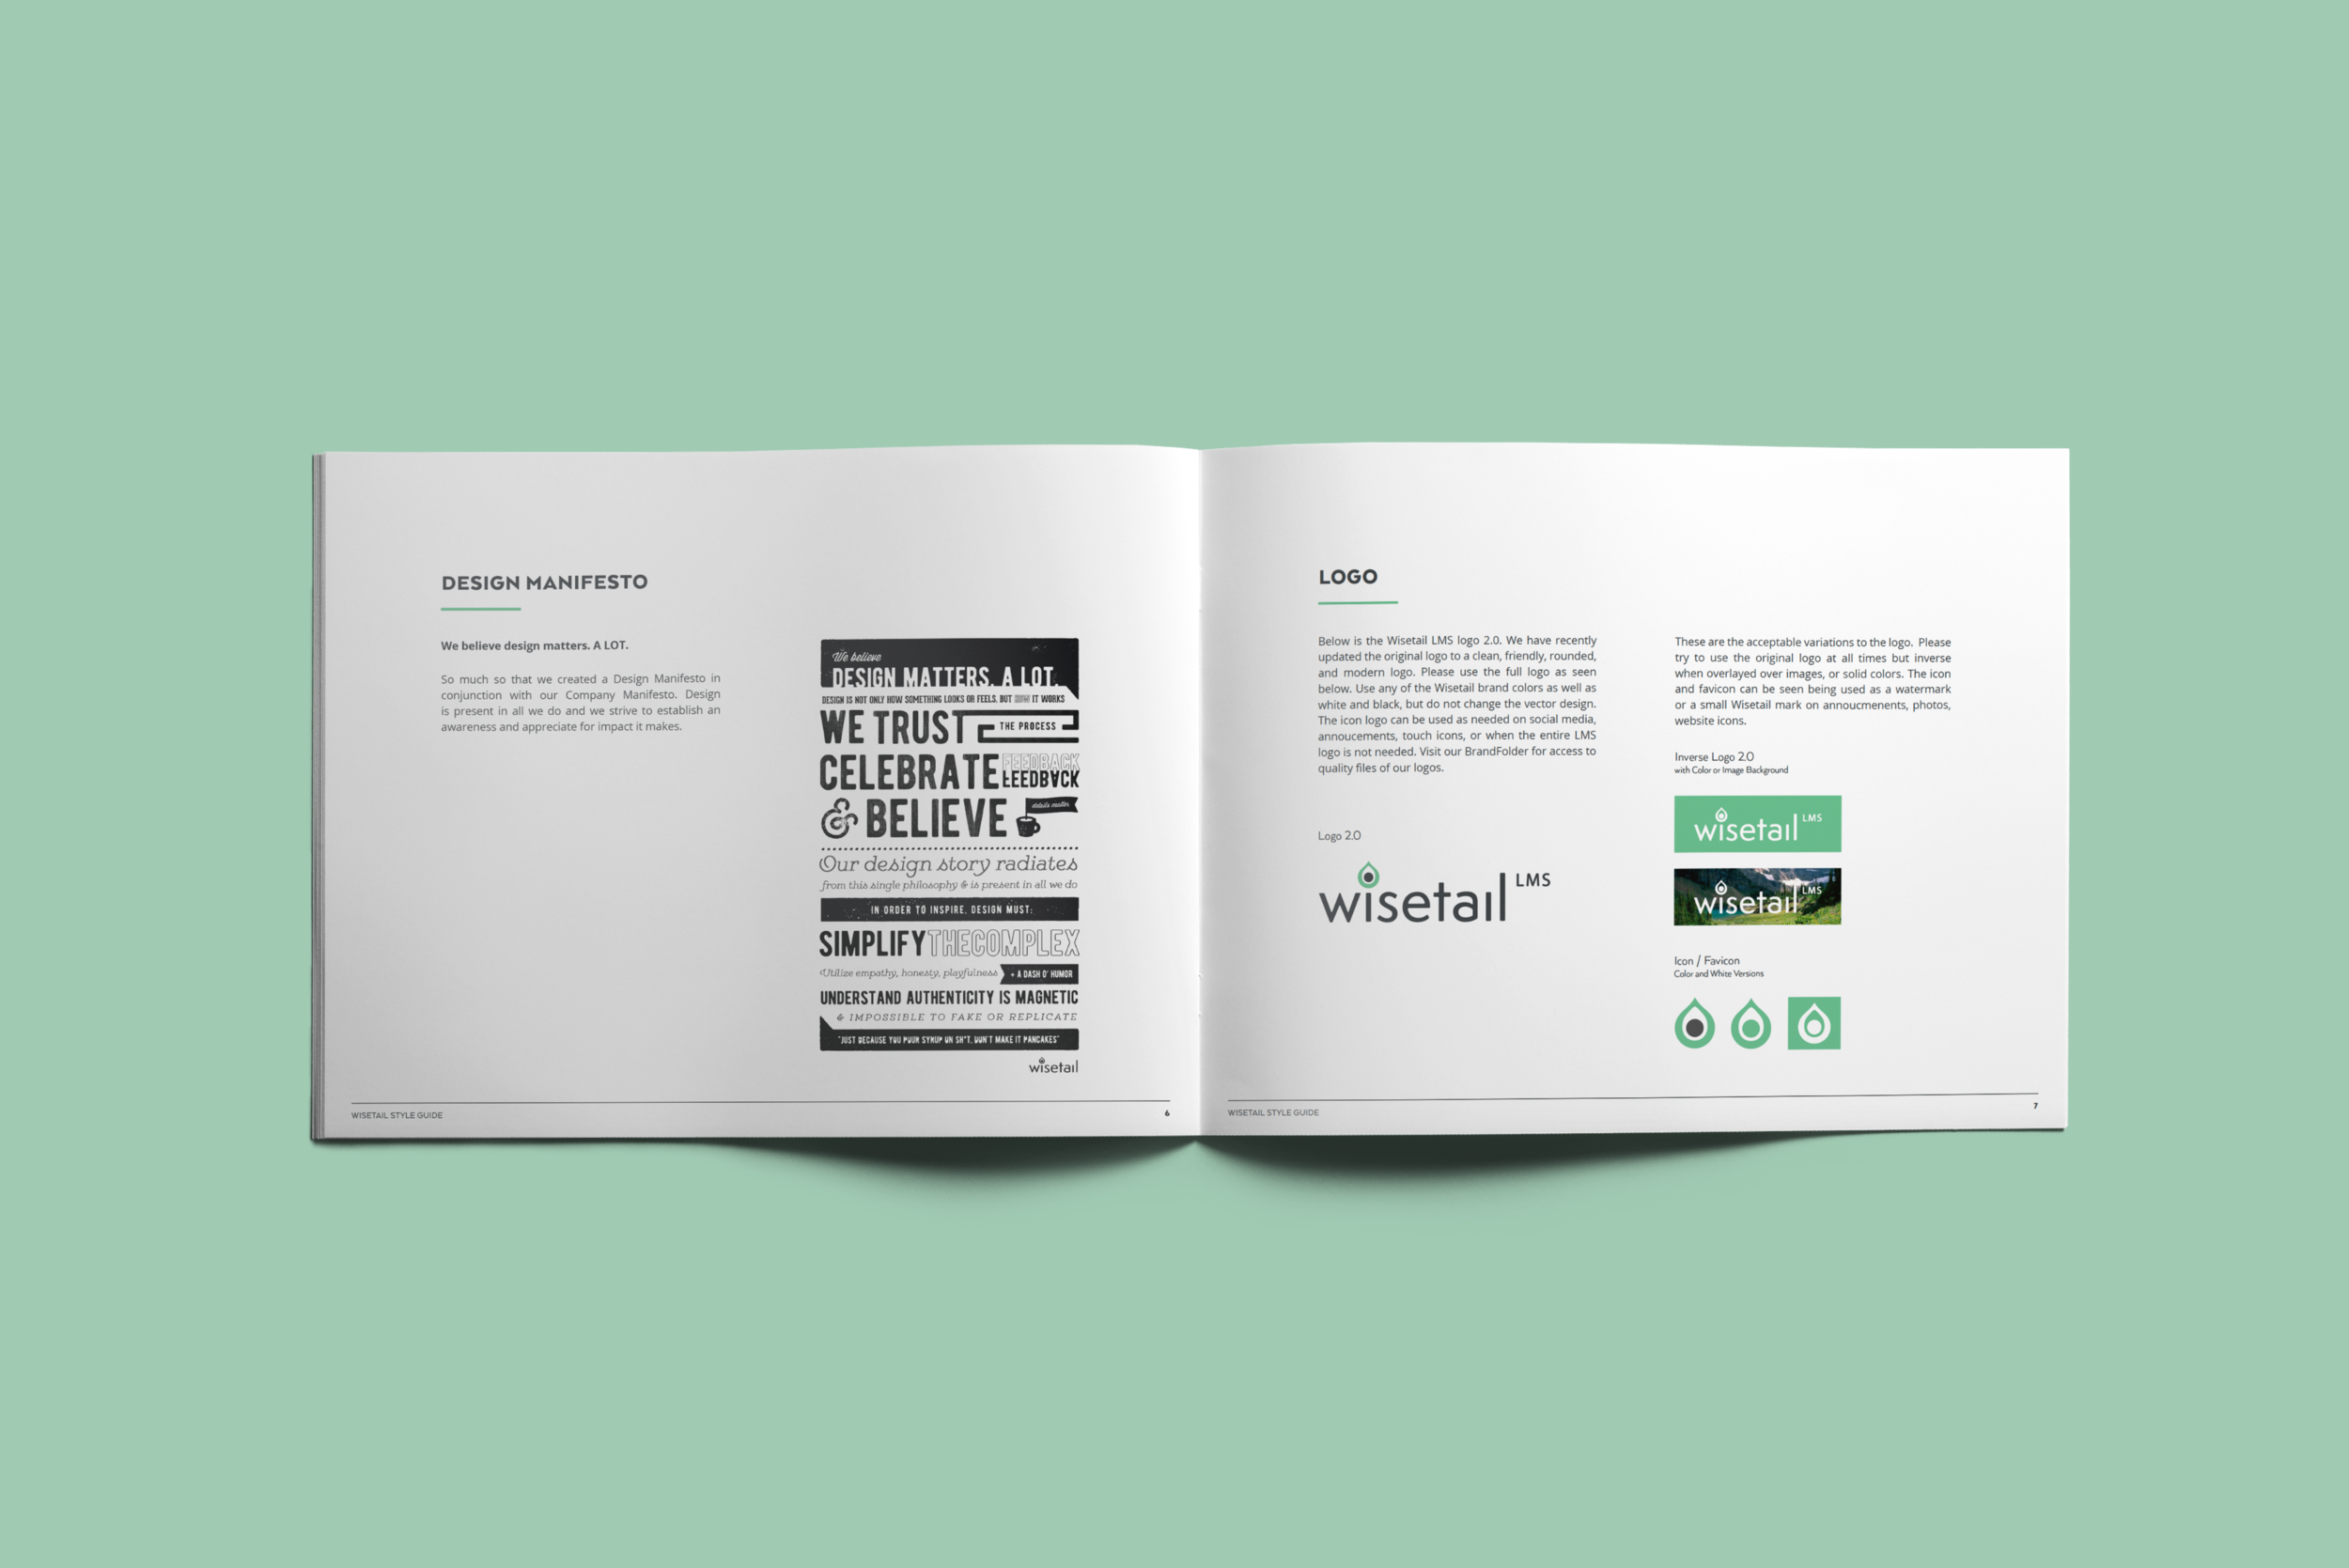 Wisetail_Styleguide_Page3_Color.png